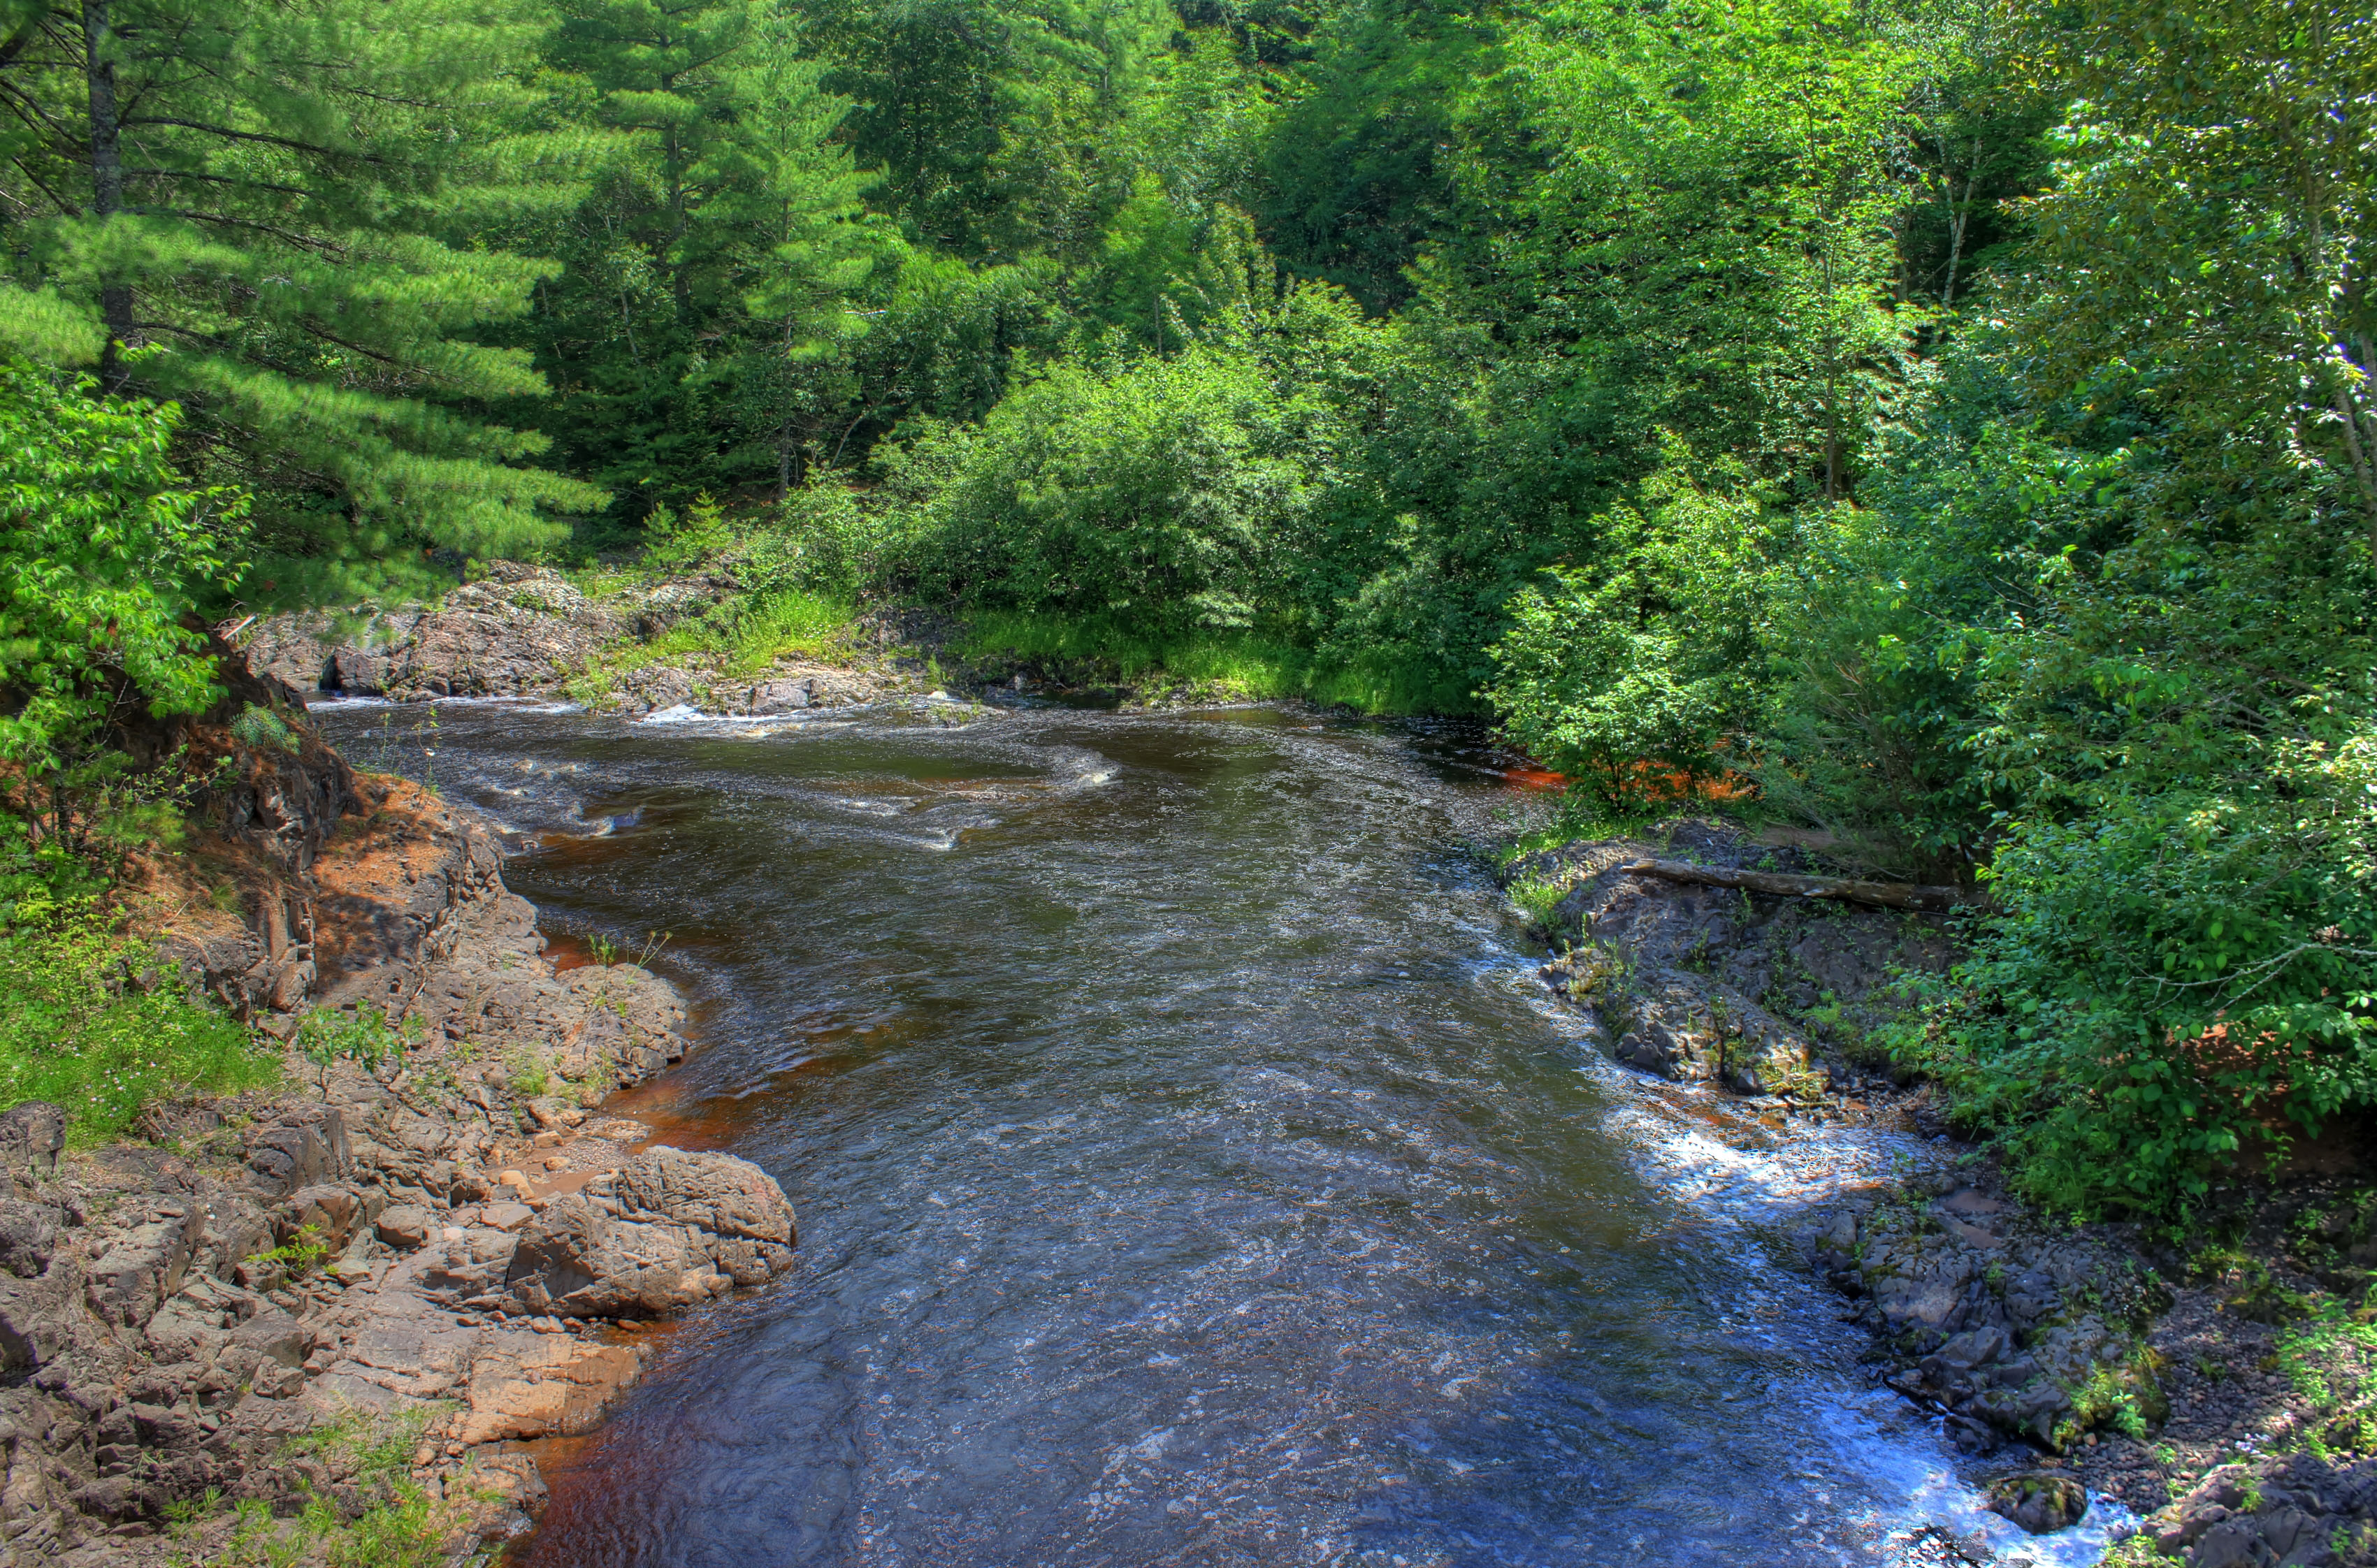 Downstream on the Bad river at Copper Falls State Park, Wisconsin.